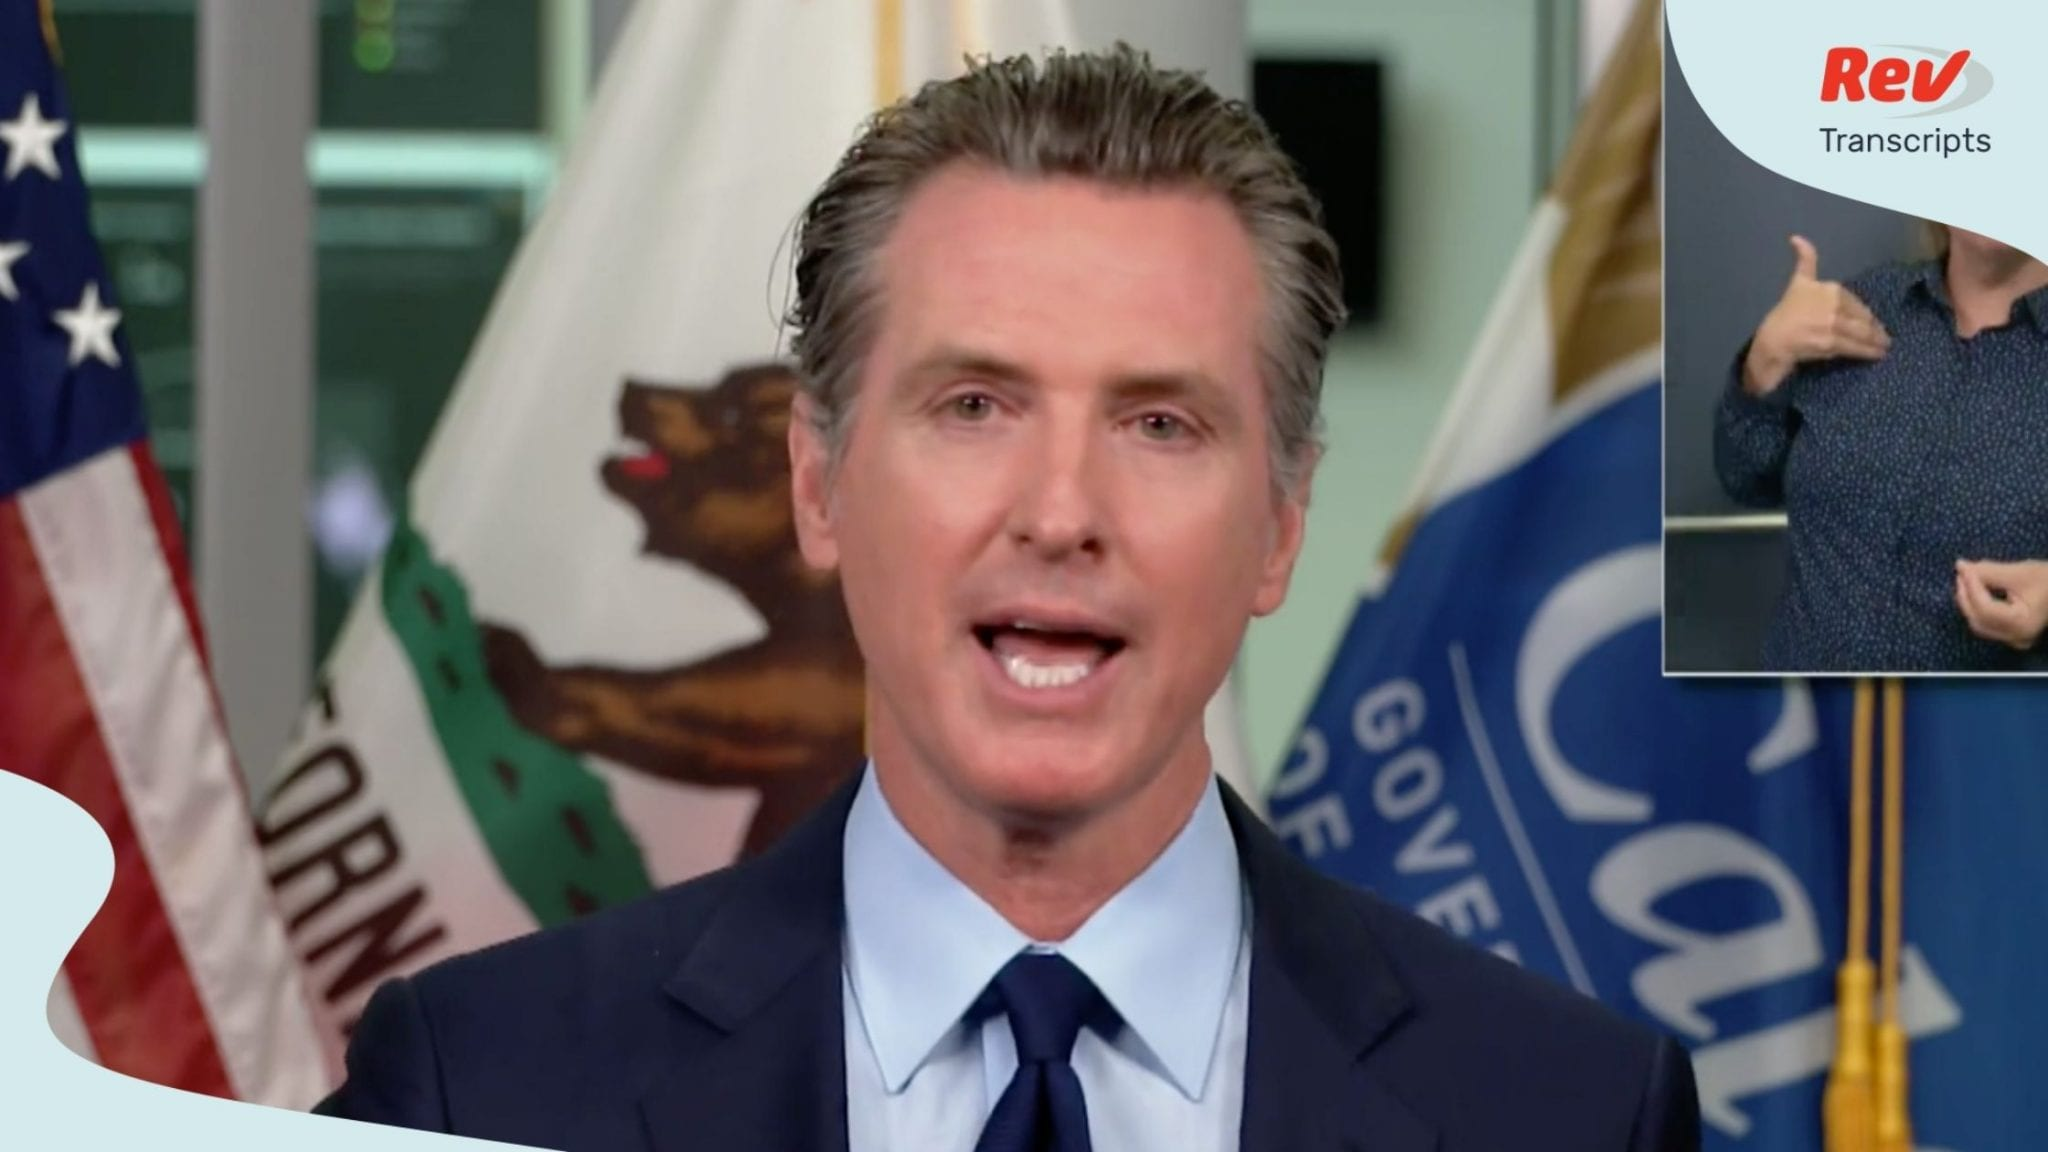 California Governor Gavin Newsom August 12 Press Conference Transcript